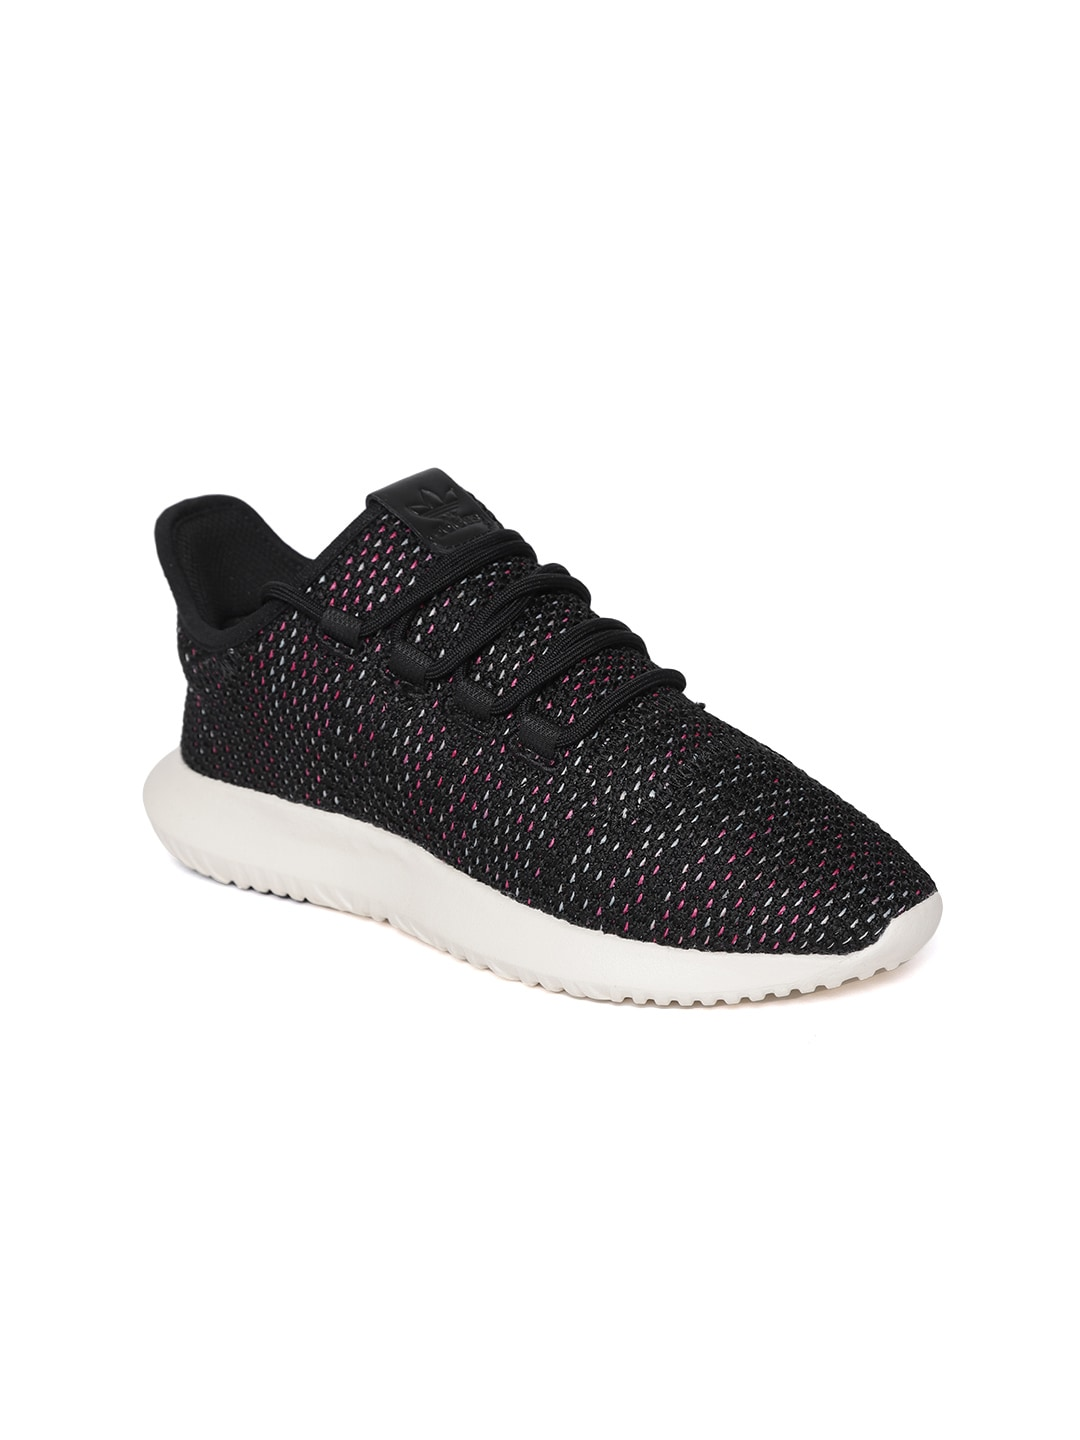 7f188bec4cae Adidas Originals Tubular - Buy Adidas Originals Tubular online in India